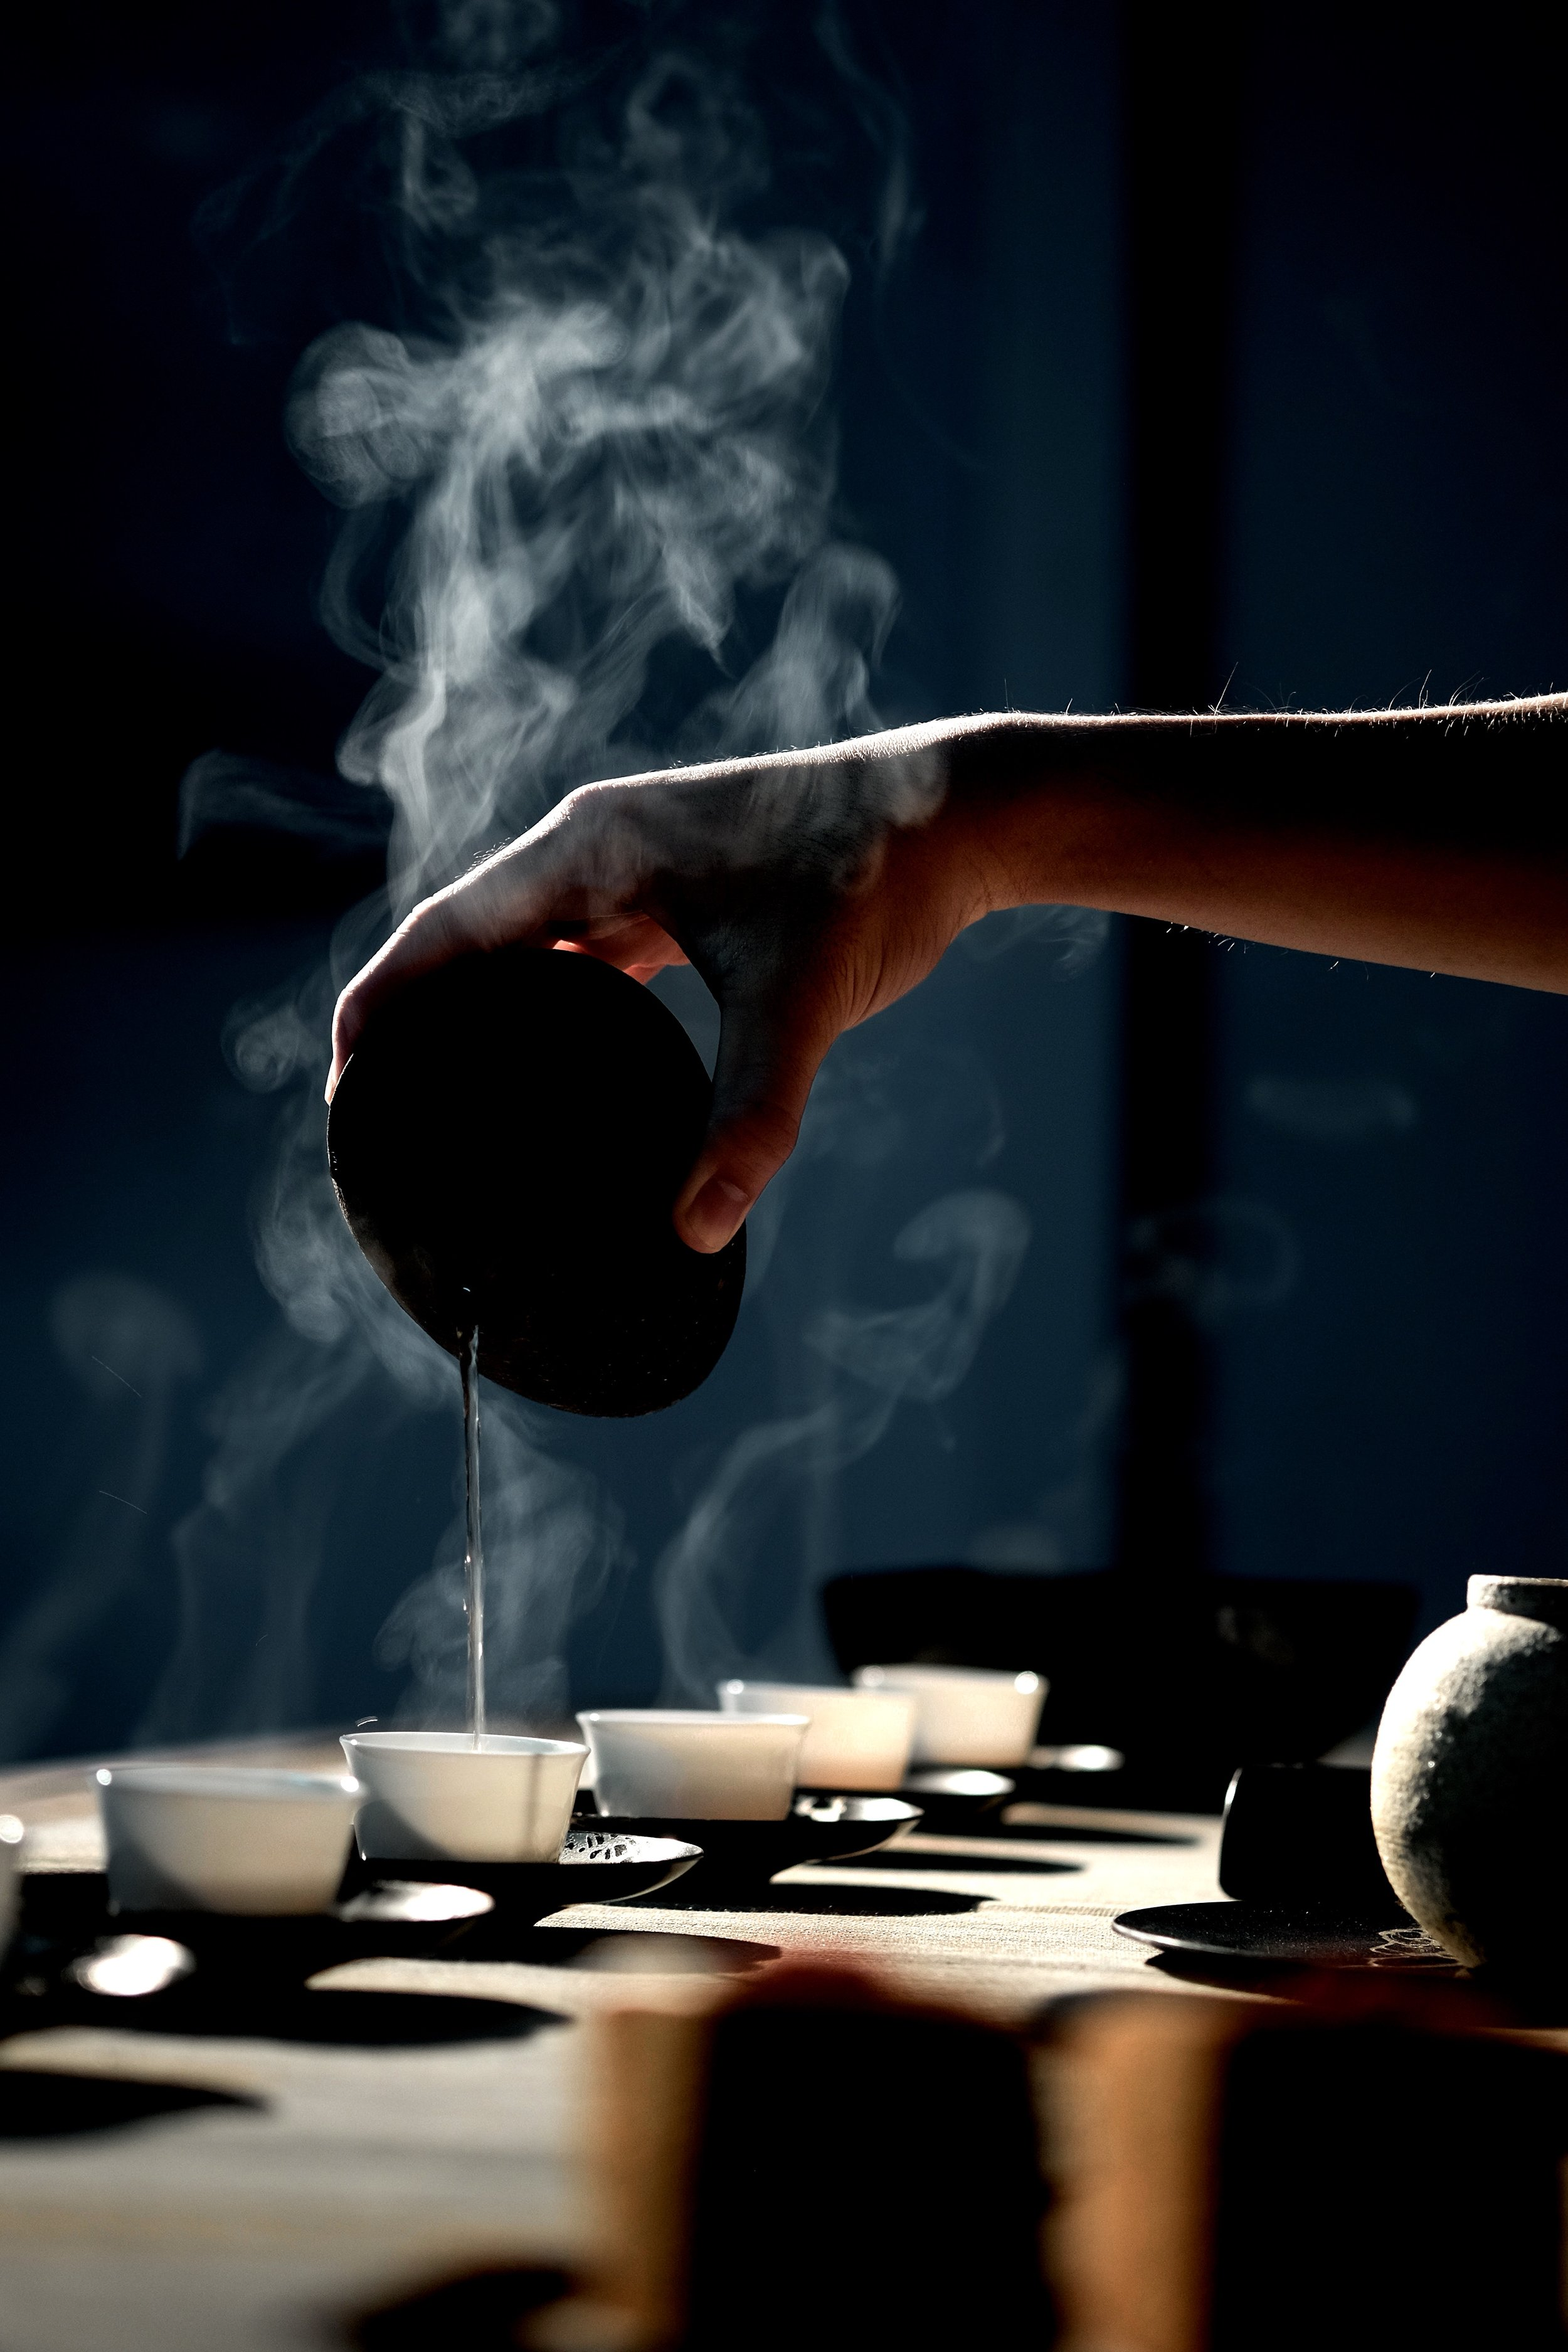 tea collection - THE TEA MENU. CURATED BY TEA SOMMELIER MOMO QIANG, INCLUDES HIGHLY RARE VARIETIES NORMALLY RESERVED FOR PRIVATE COLLECTIONS,HUNDRED YEAR OLD PU'ERH, 龙井, AND VARIETIES FORMERLY ONLY SERVED TO ROYALTY.